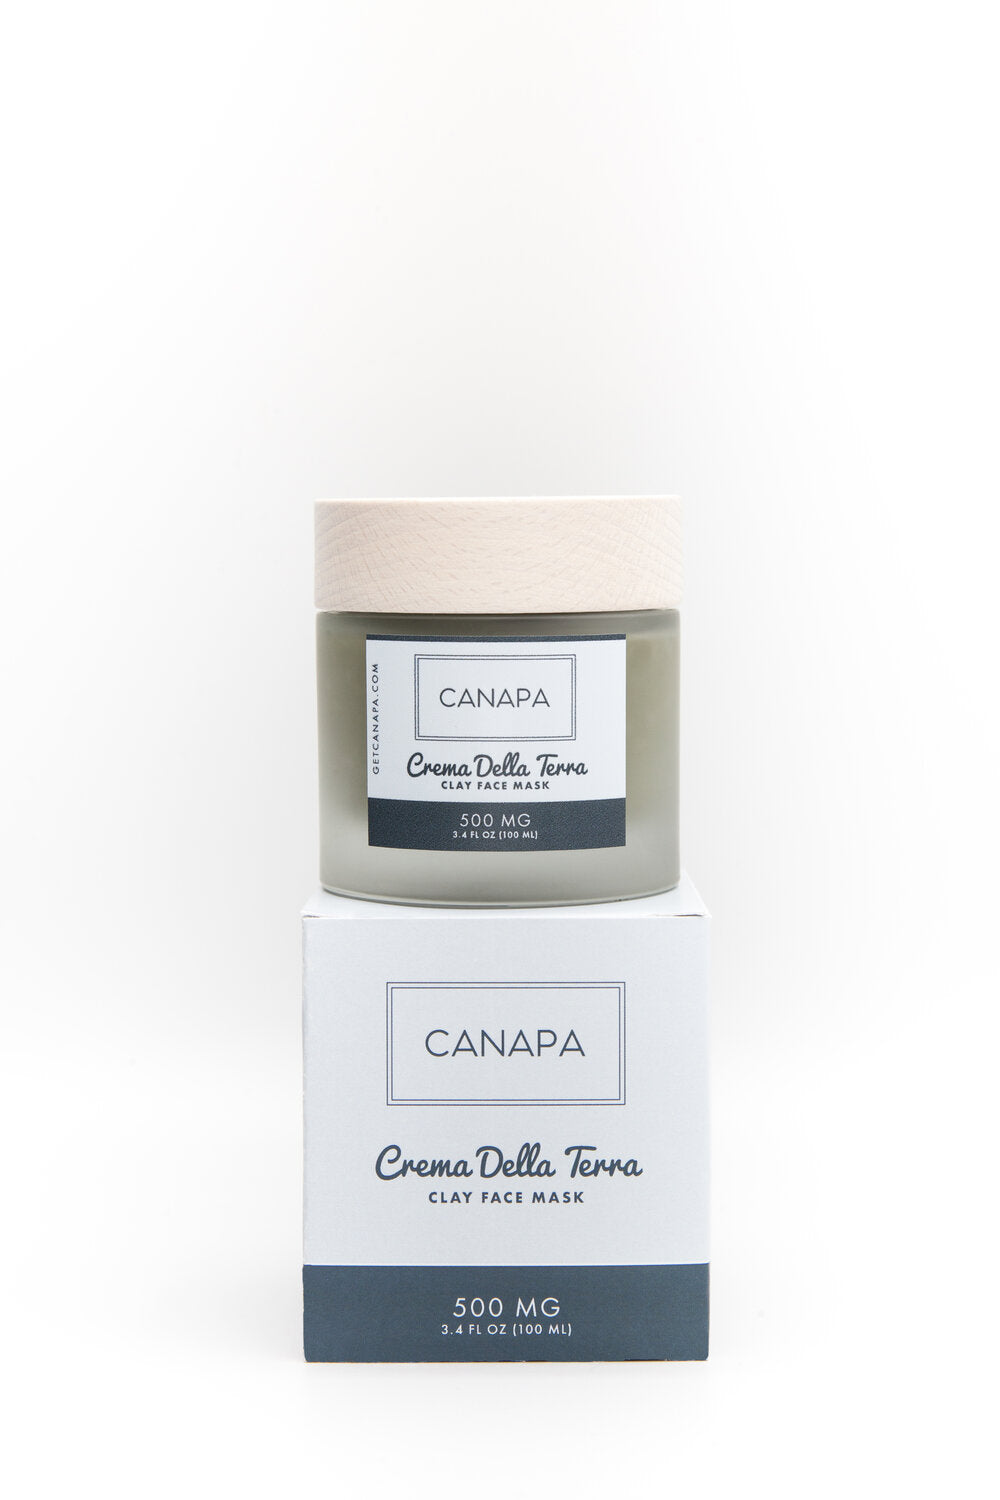 Canapa Crema Della Terra (Clay Face Mask) 500 mg CBD - Free State Collective CBD